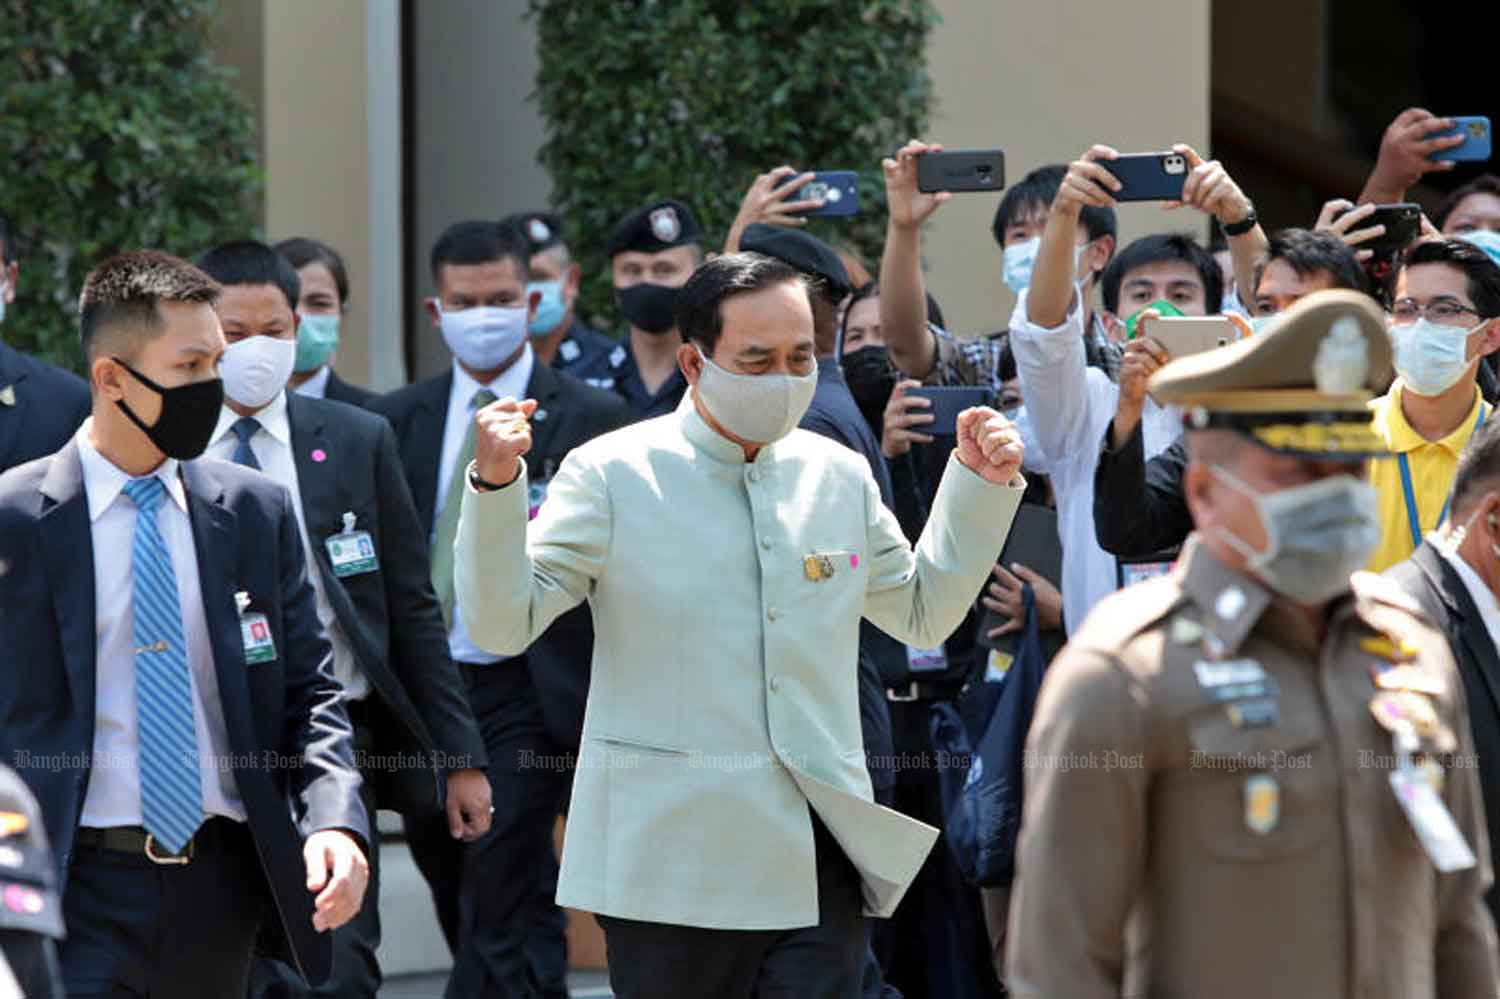 Prime MInister Prayut Chan-o-cha, centre, gestures after announcing the government will exercise emergency measures to control Covid-19. (Photo: Chanat Katanyu)